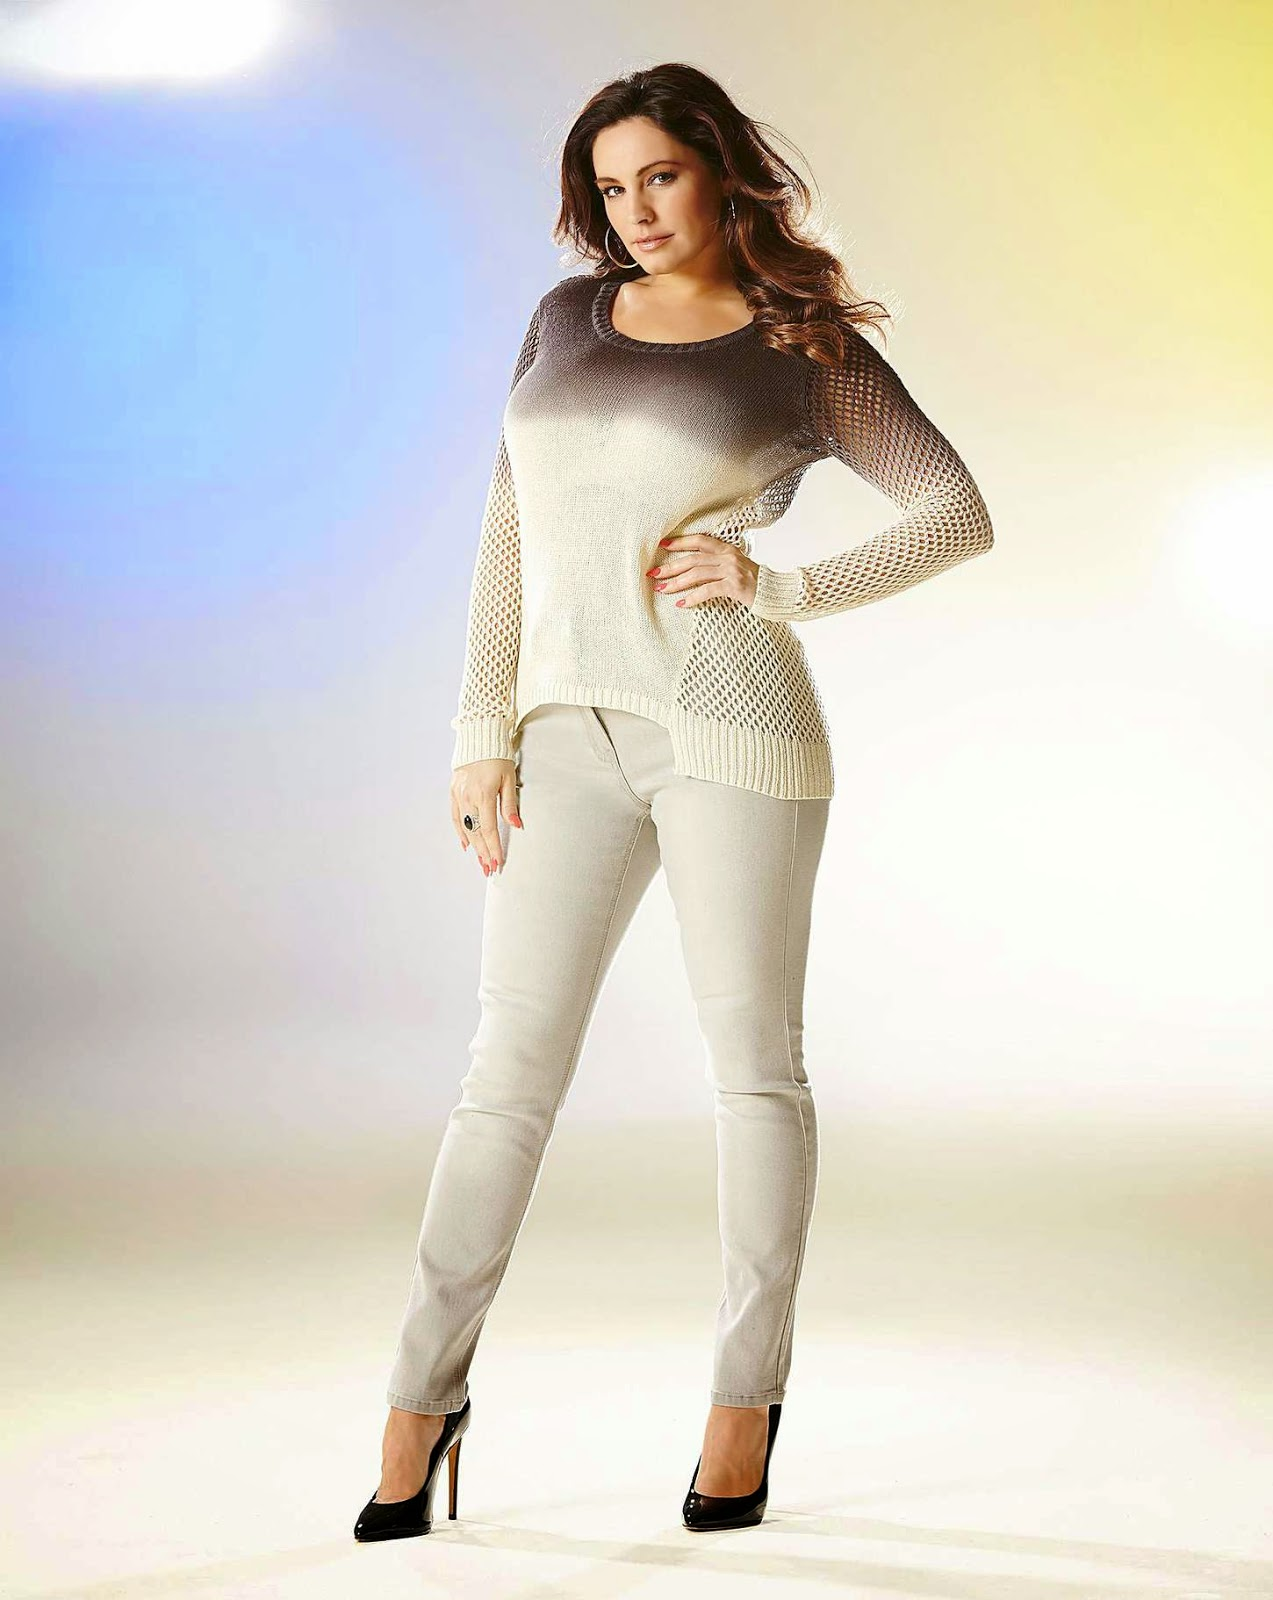 Kelly Brook poses for the 'Simply Be' Spring-Summer 2015 Lookbook